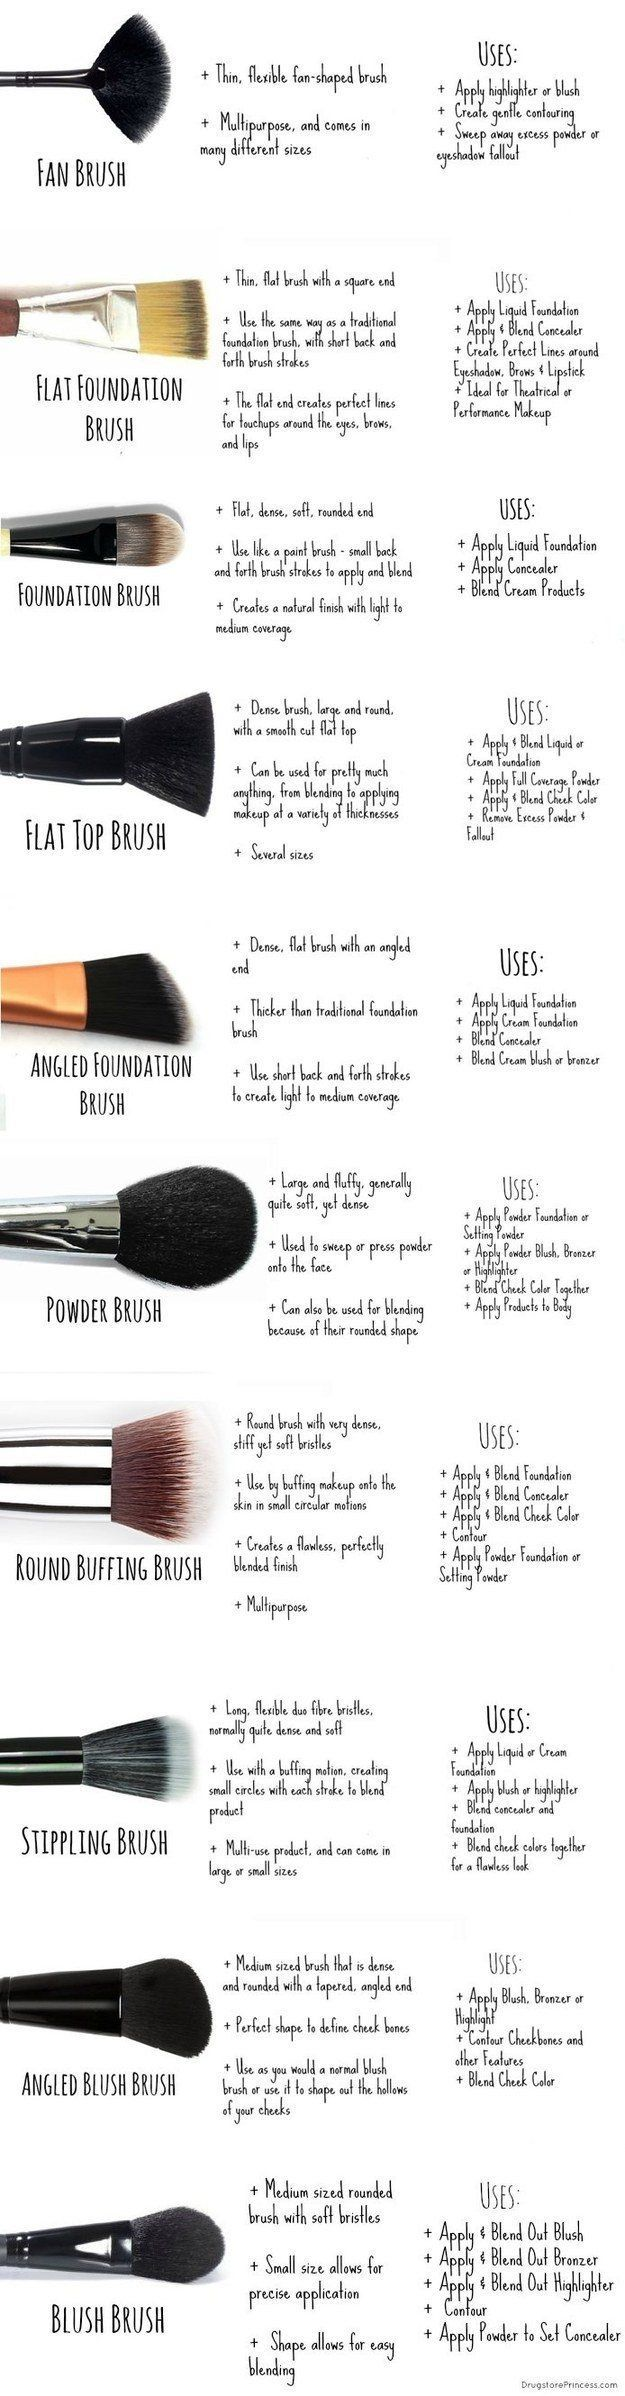 Check out ** Make-up Brushes a hundred and one | Detailed Information On How To Use Your Set - Make-up Tutorials {Check more|Read More|Learn more|More info} at { http://makeuptutorials.com/makeup-brushes-101-detailed-guide-on-how-to-use-your-set/ |the image {link|url}}